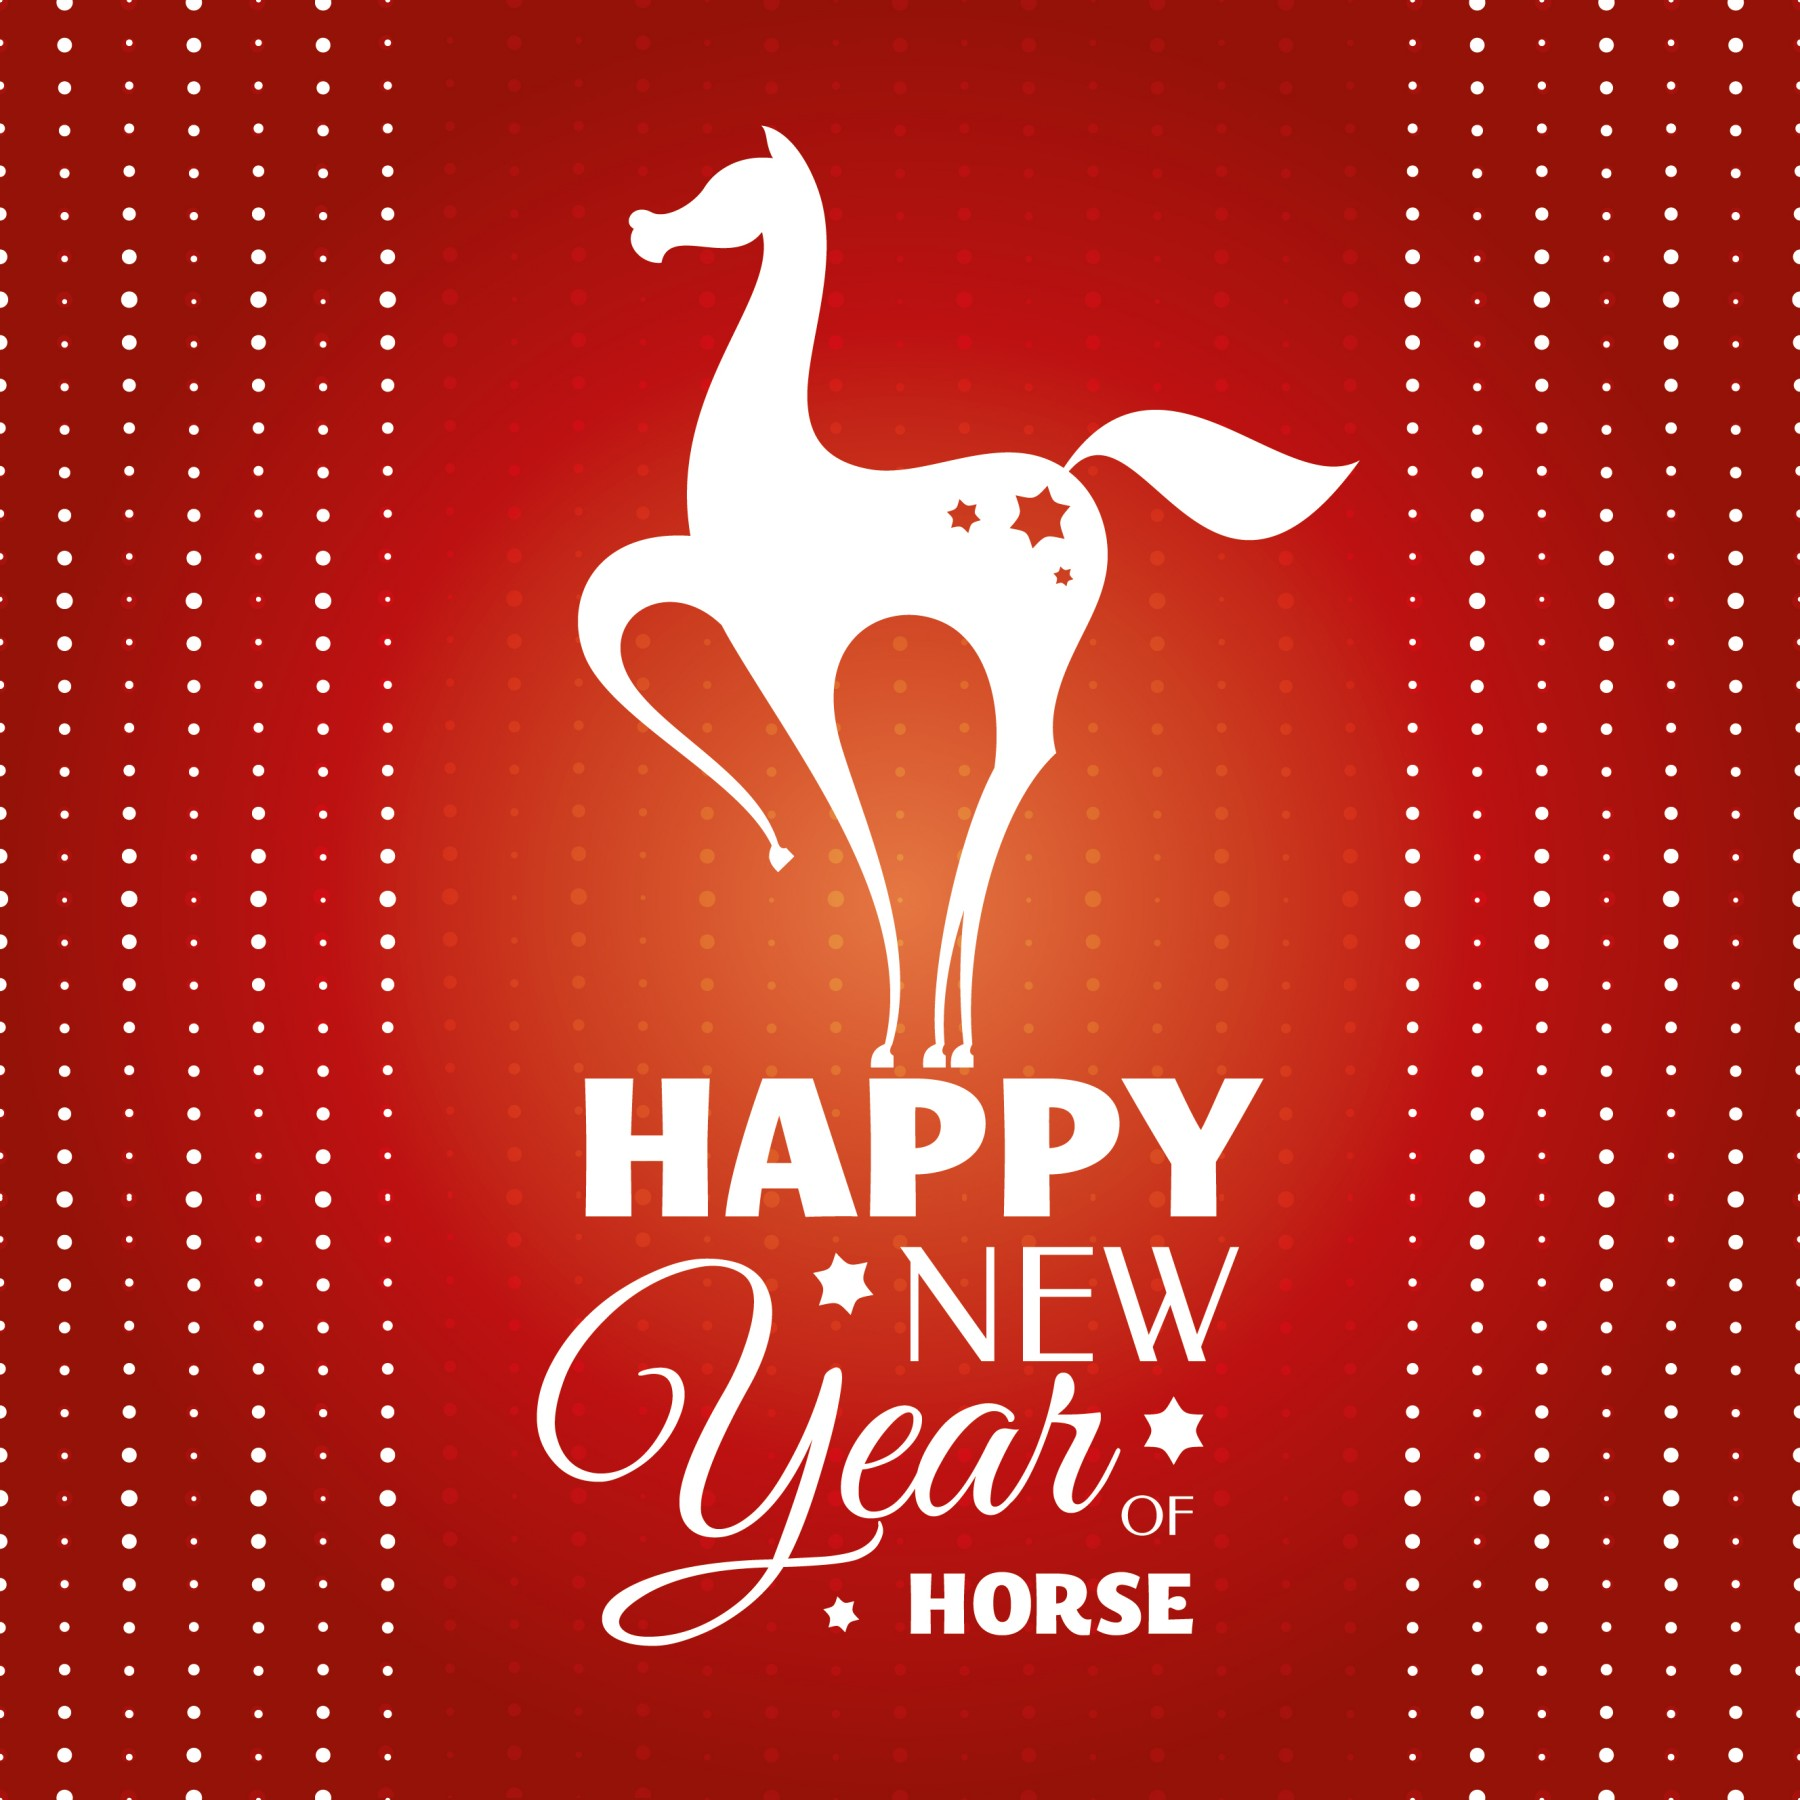 Top 10 Inspiring Happy Chinese New Year 2014 Quotes, Messages, SMS, Wishes, Greetings